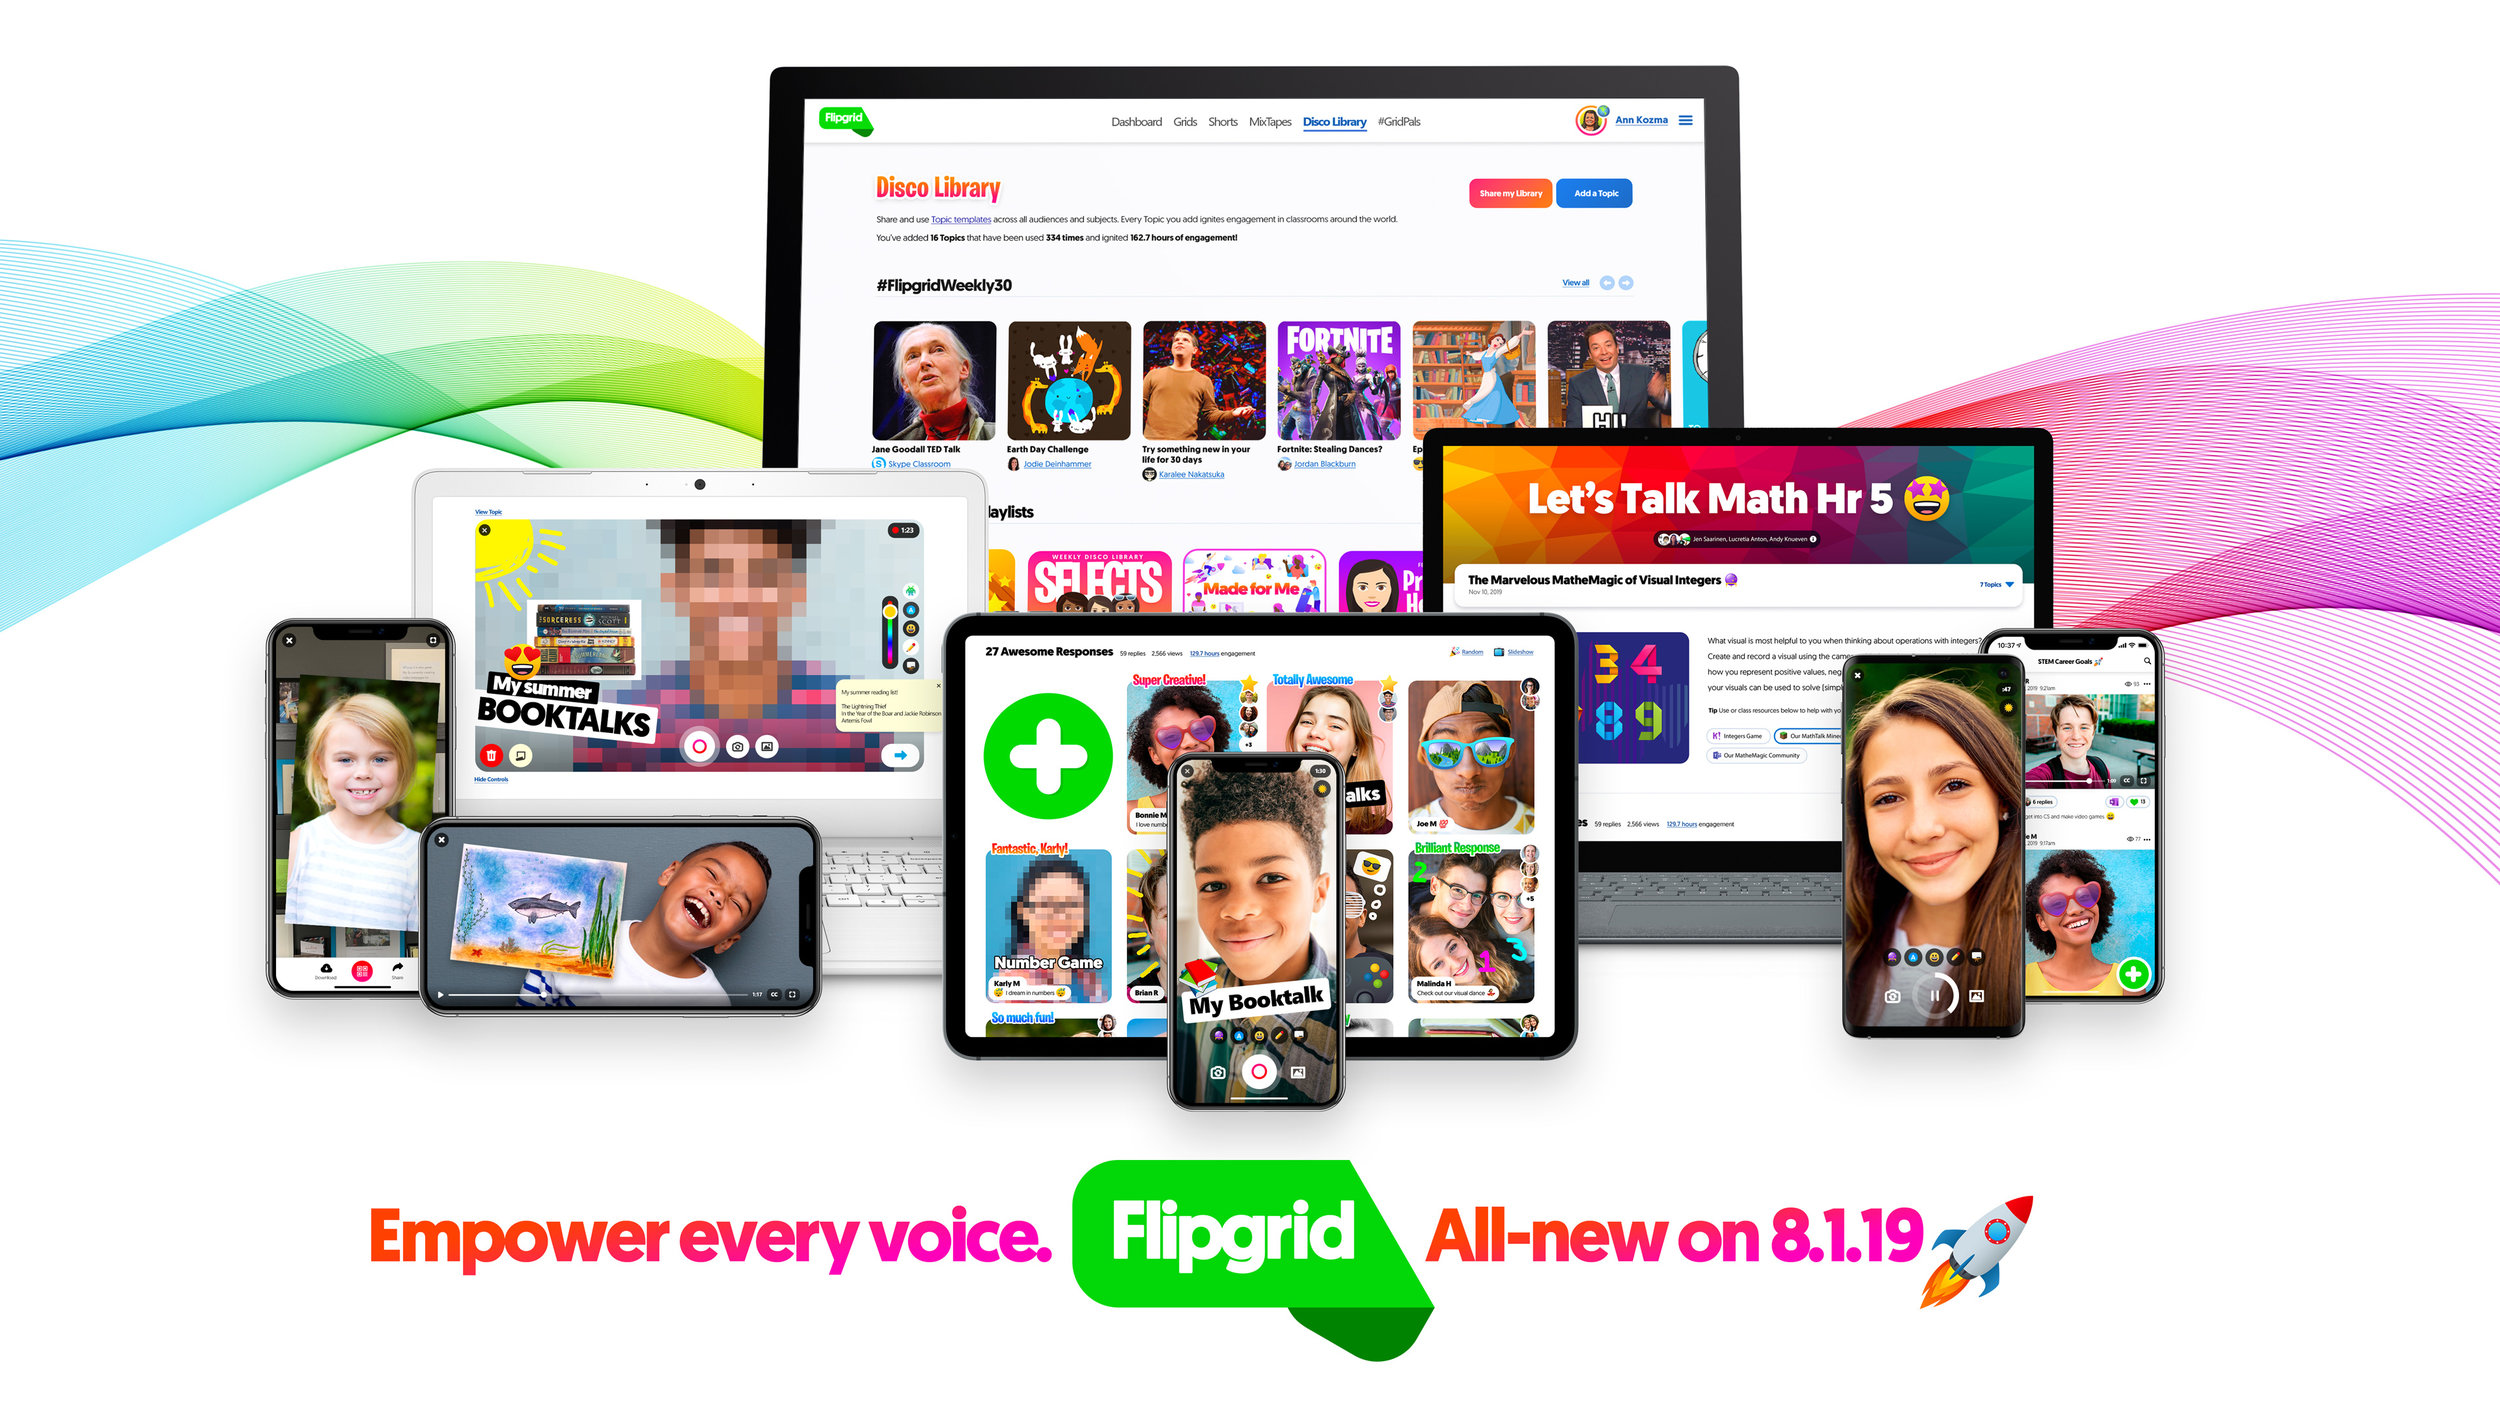 Flipgrid_devices.jpg